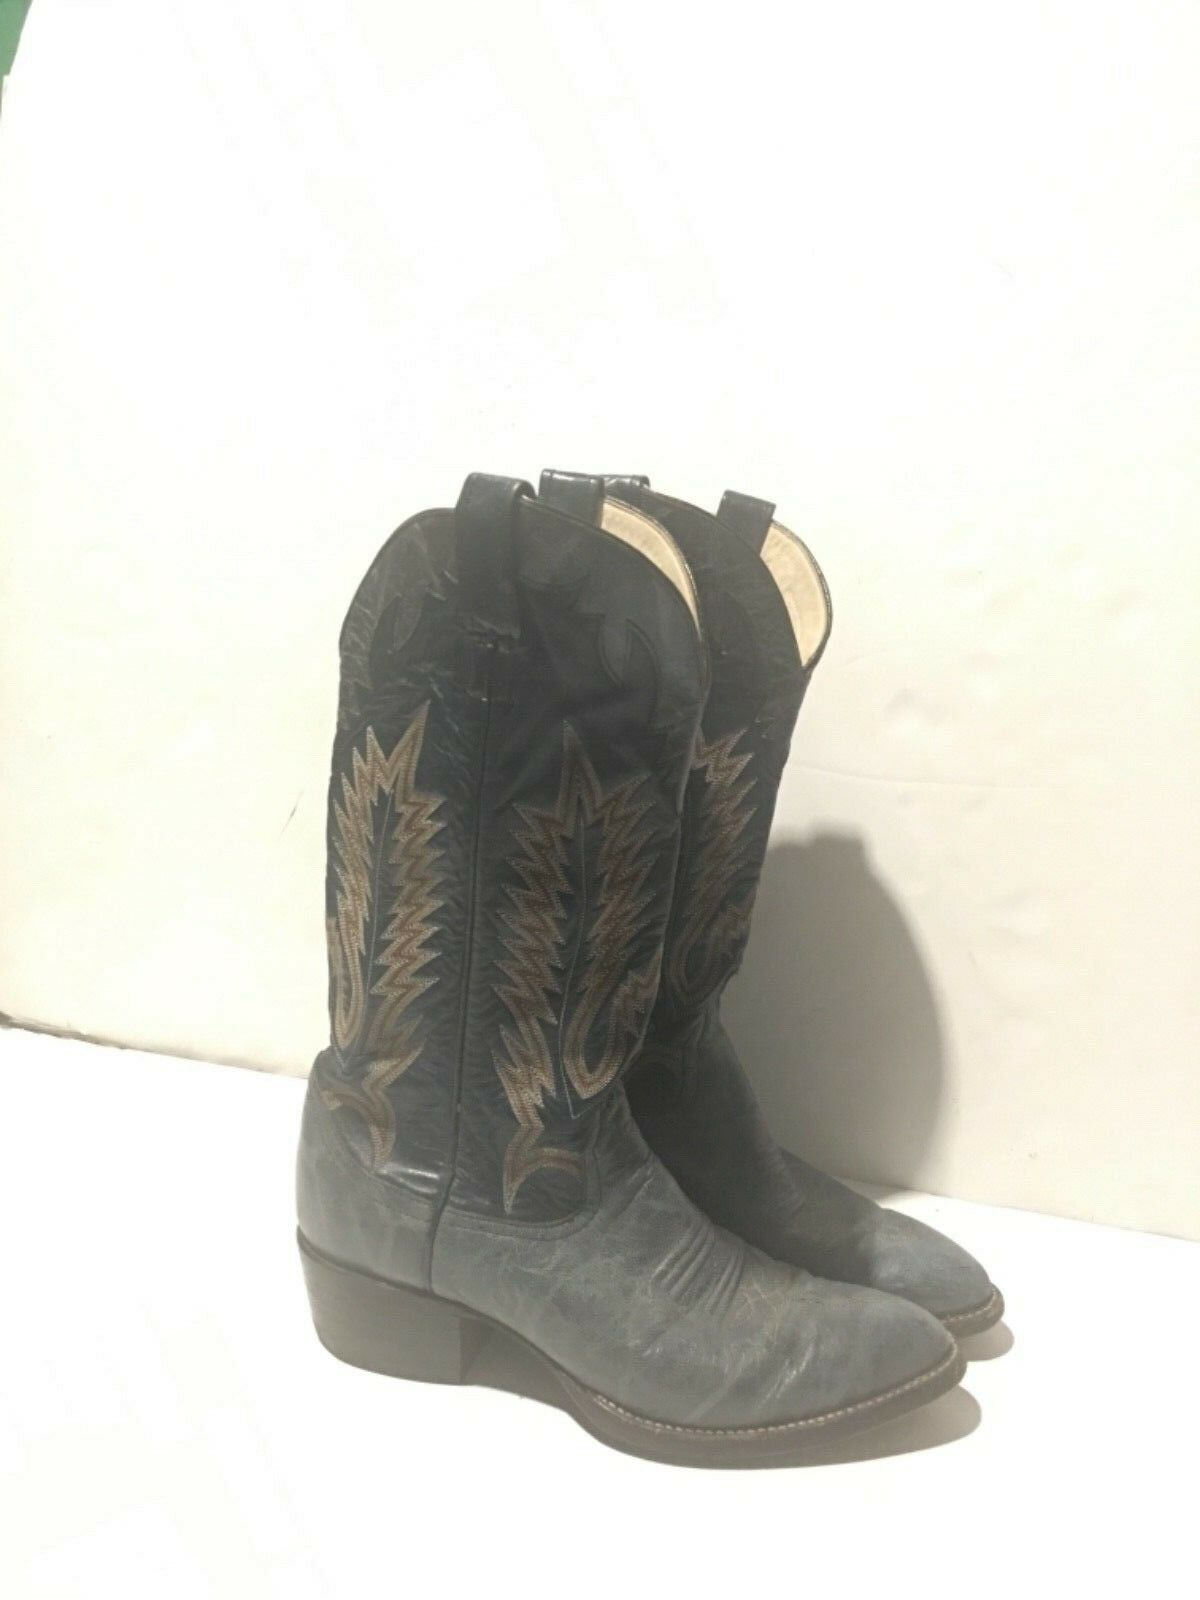 Larry Mahan Cowboy western Boots size 9